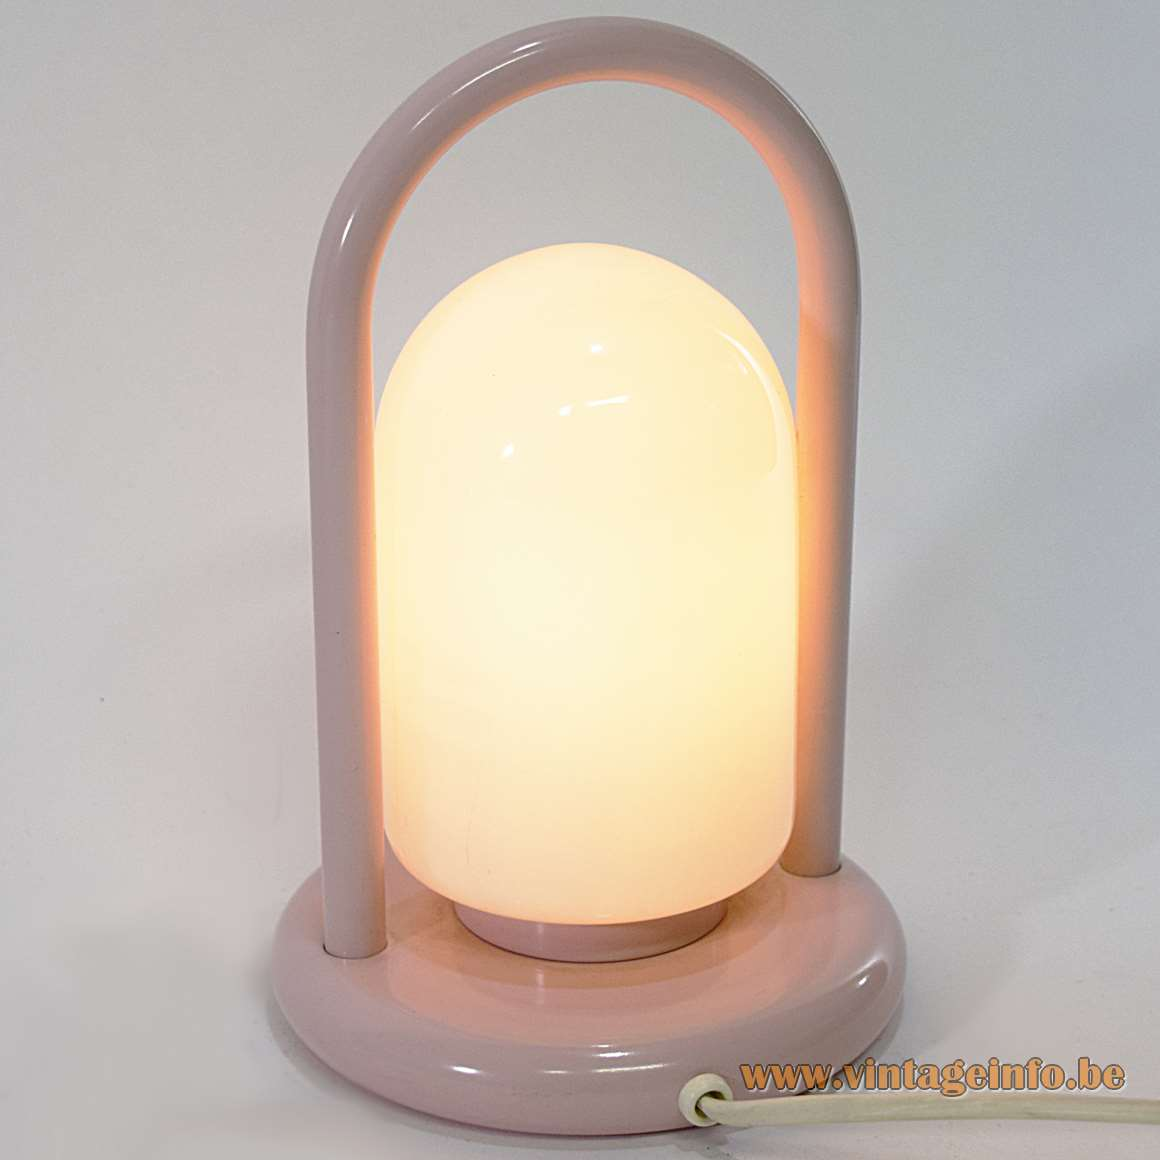 1980s Pink Handle Table Lamp white opal glass round base Tronconi Tender style Romolo Lanciani Massive